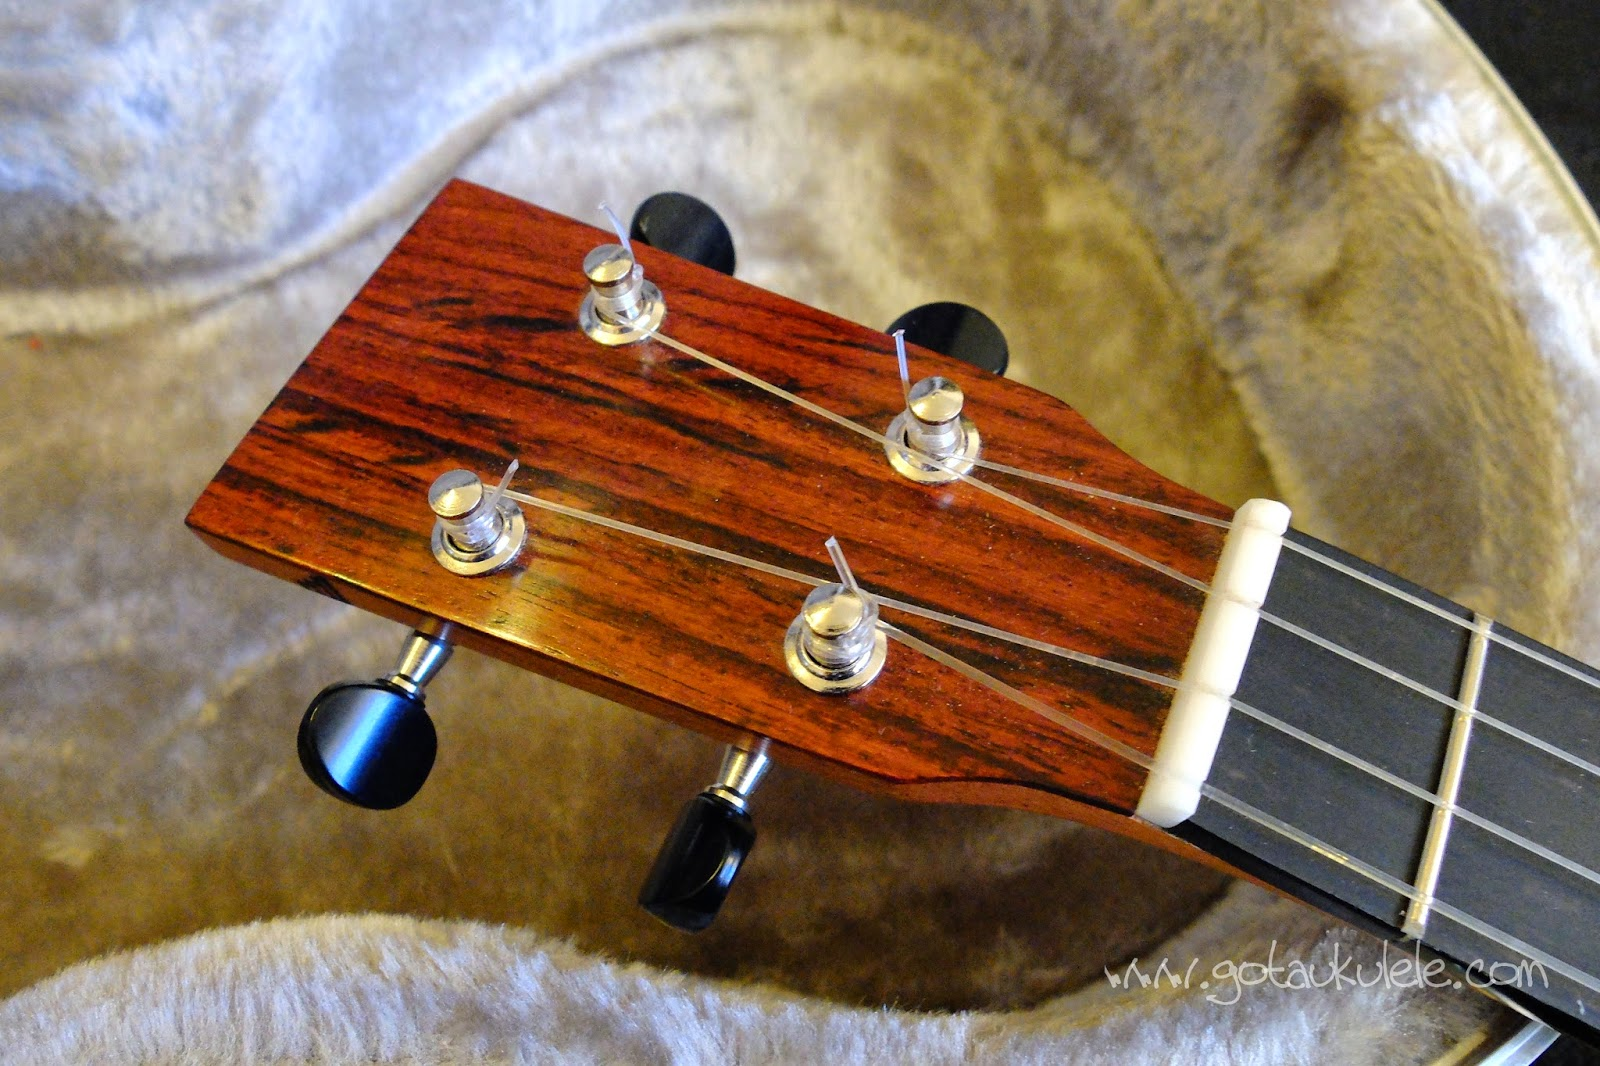 Tinguitar custom build solid electro tenor headstock